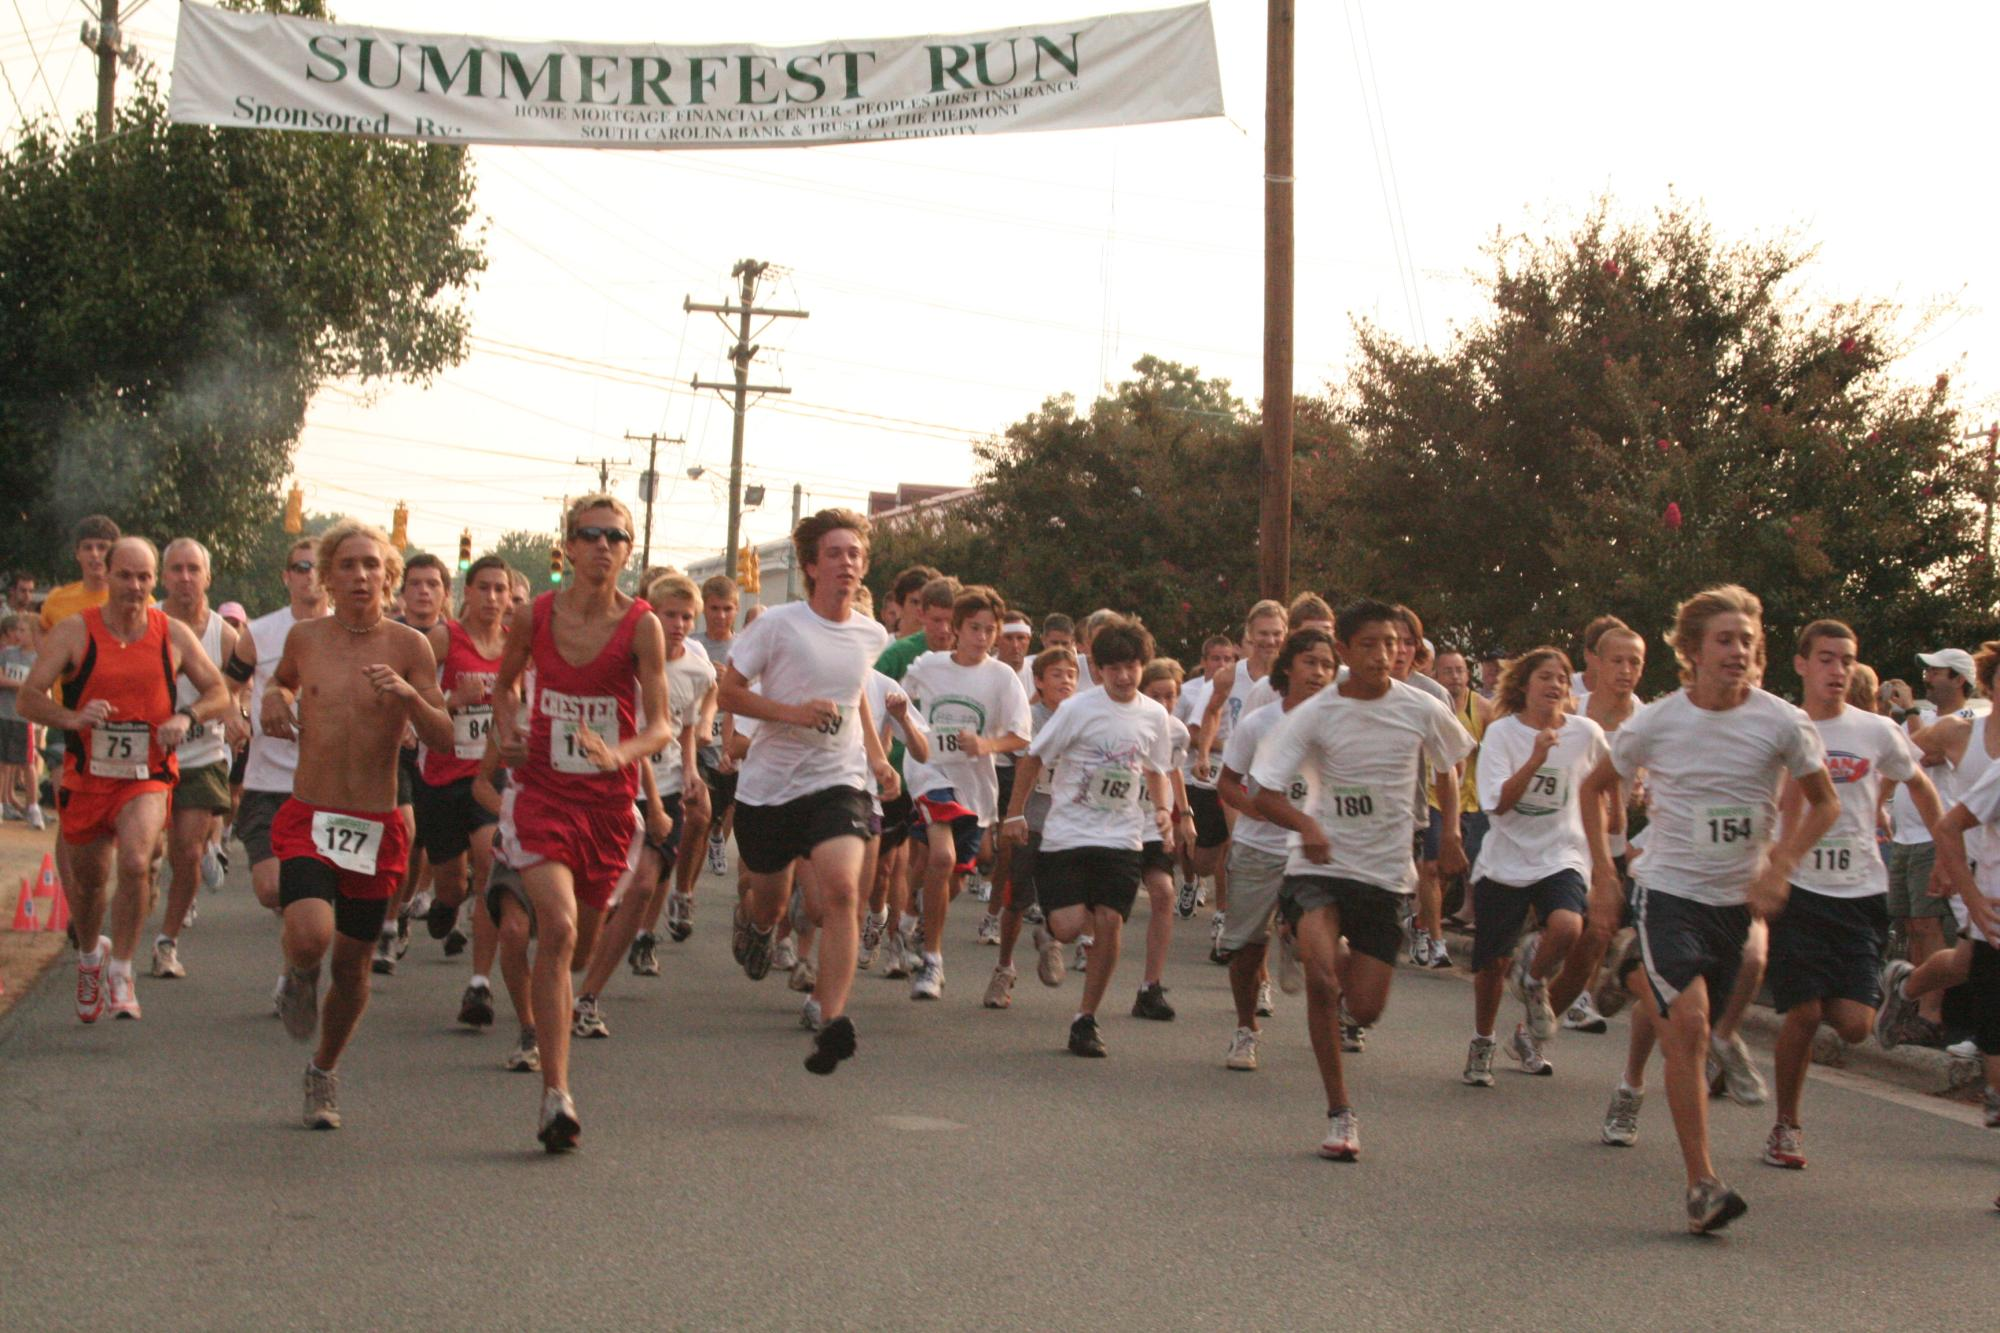 Summer_Fest_5K_Run__York__SC.jpg